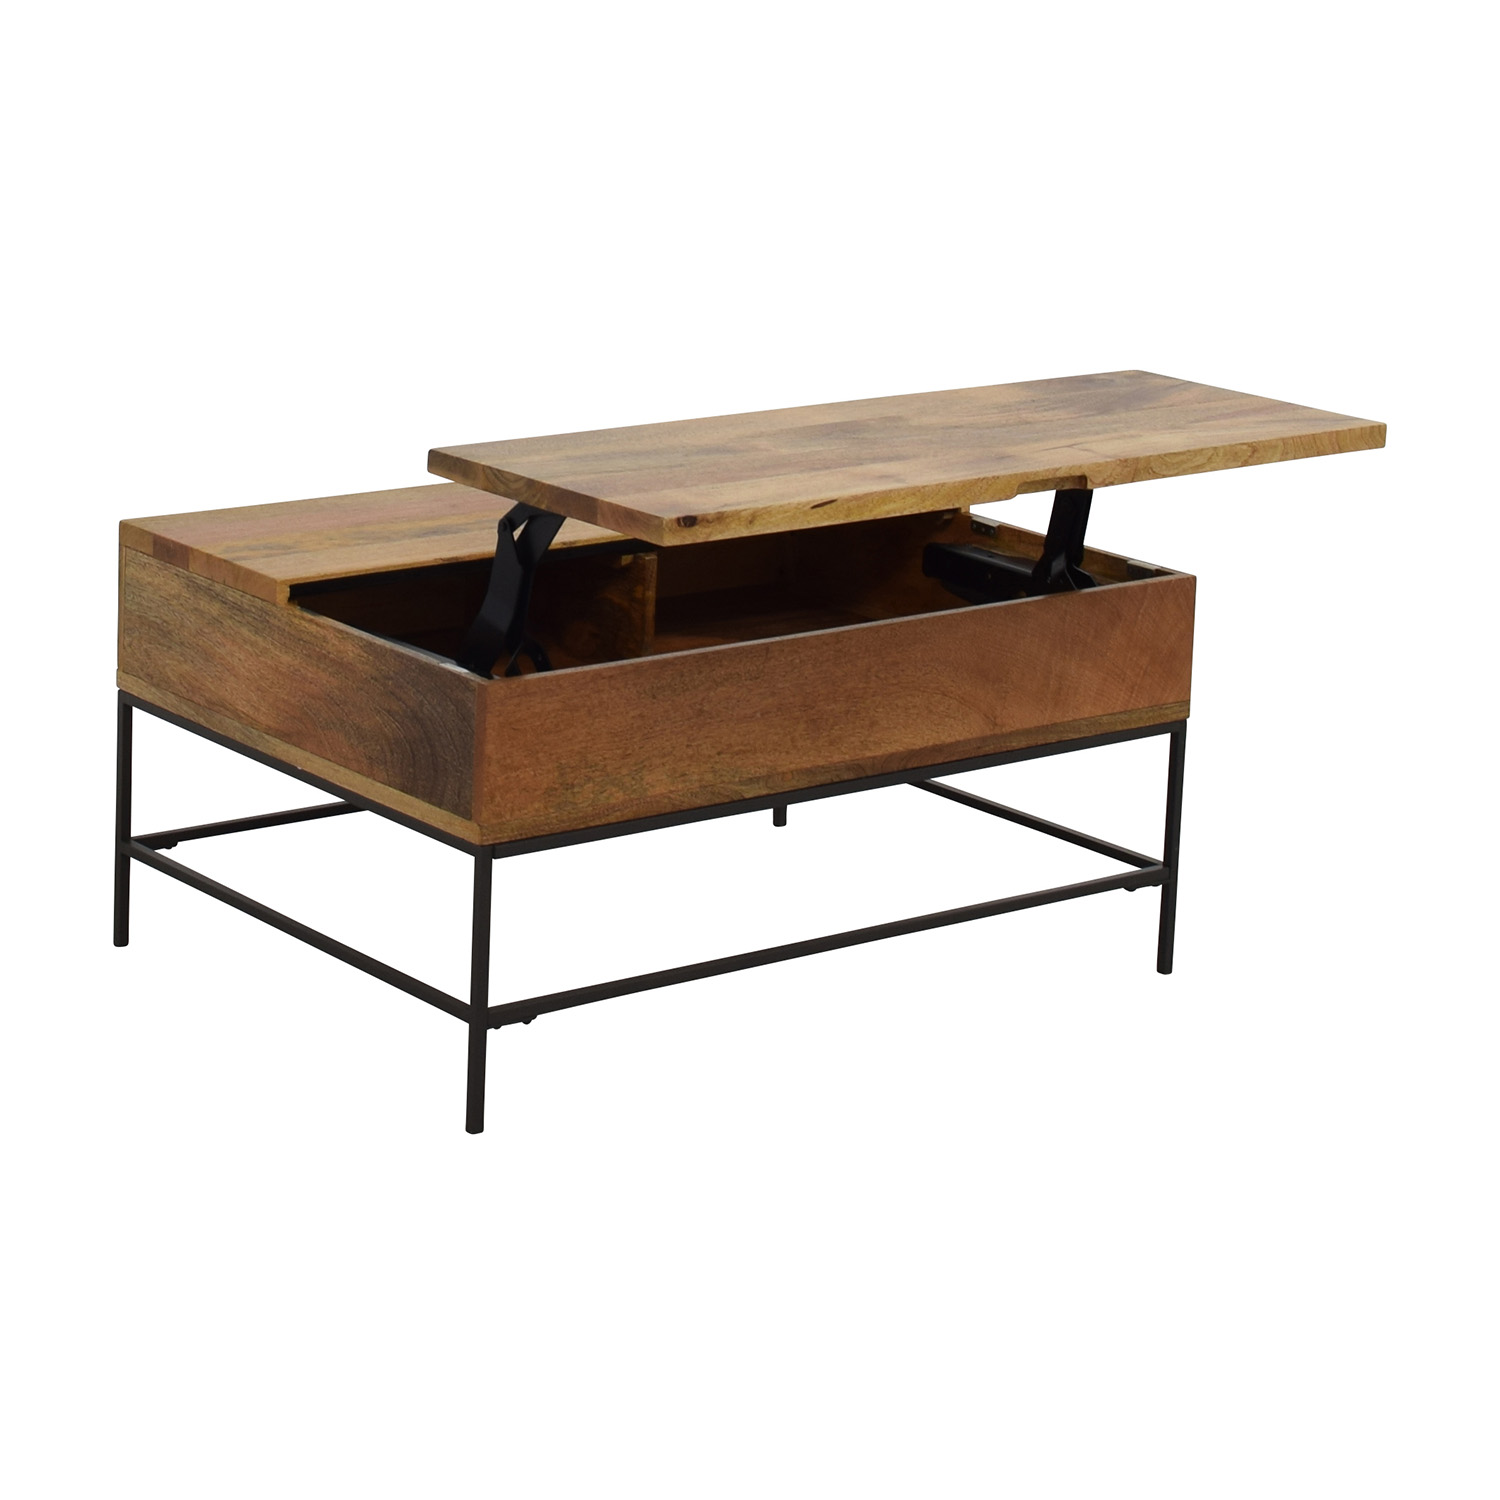 63 off west elm west elm industrial storage coffee for Coffee tables industrial